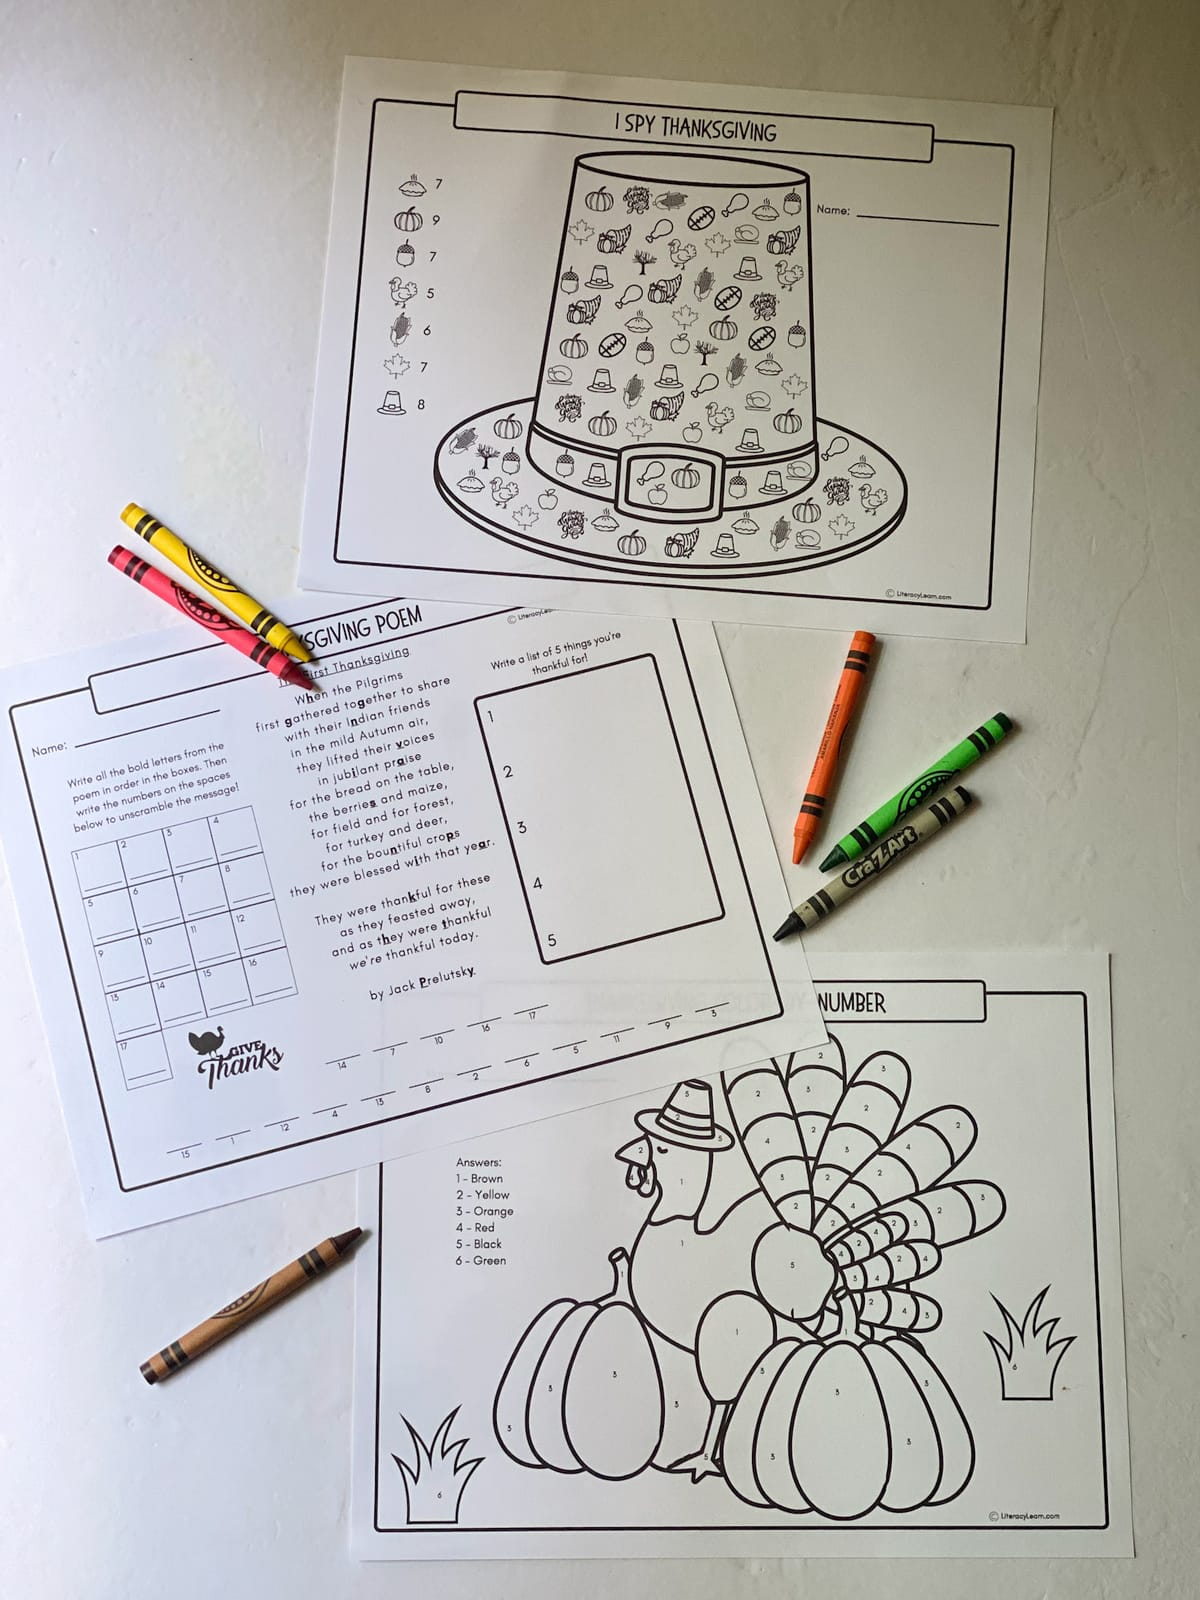 The three printed placemats on a white background with crayons.